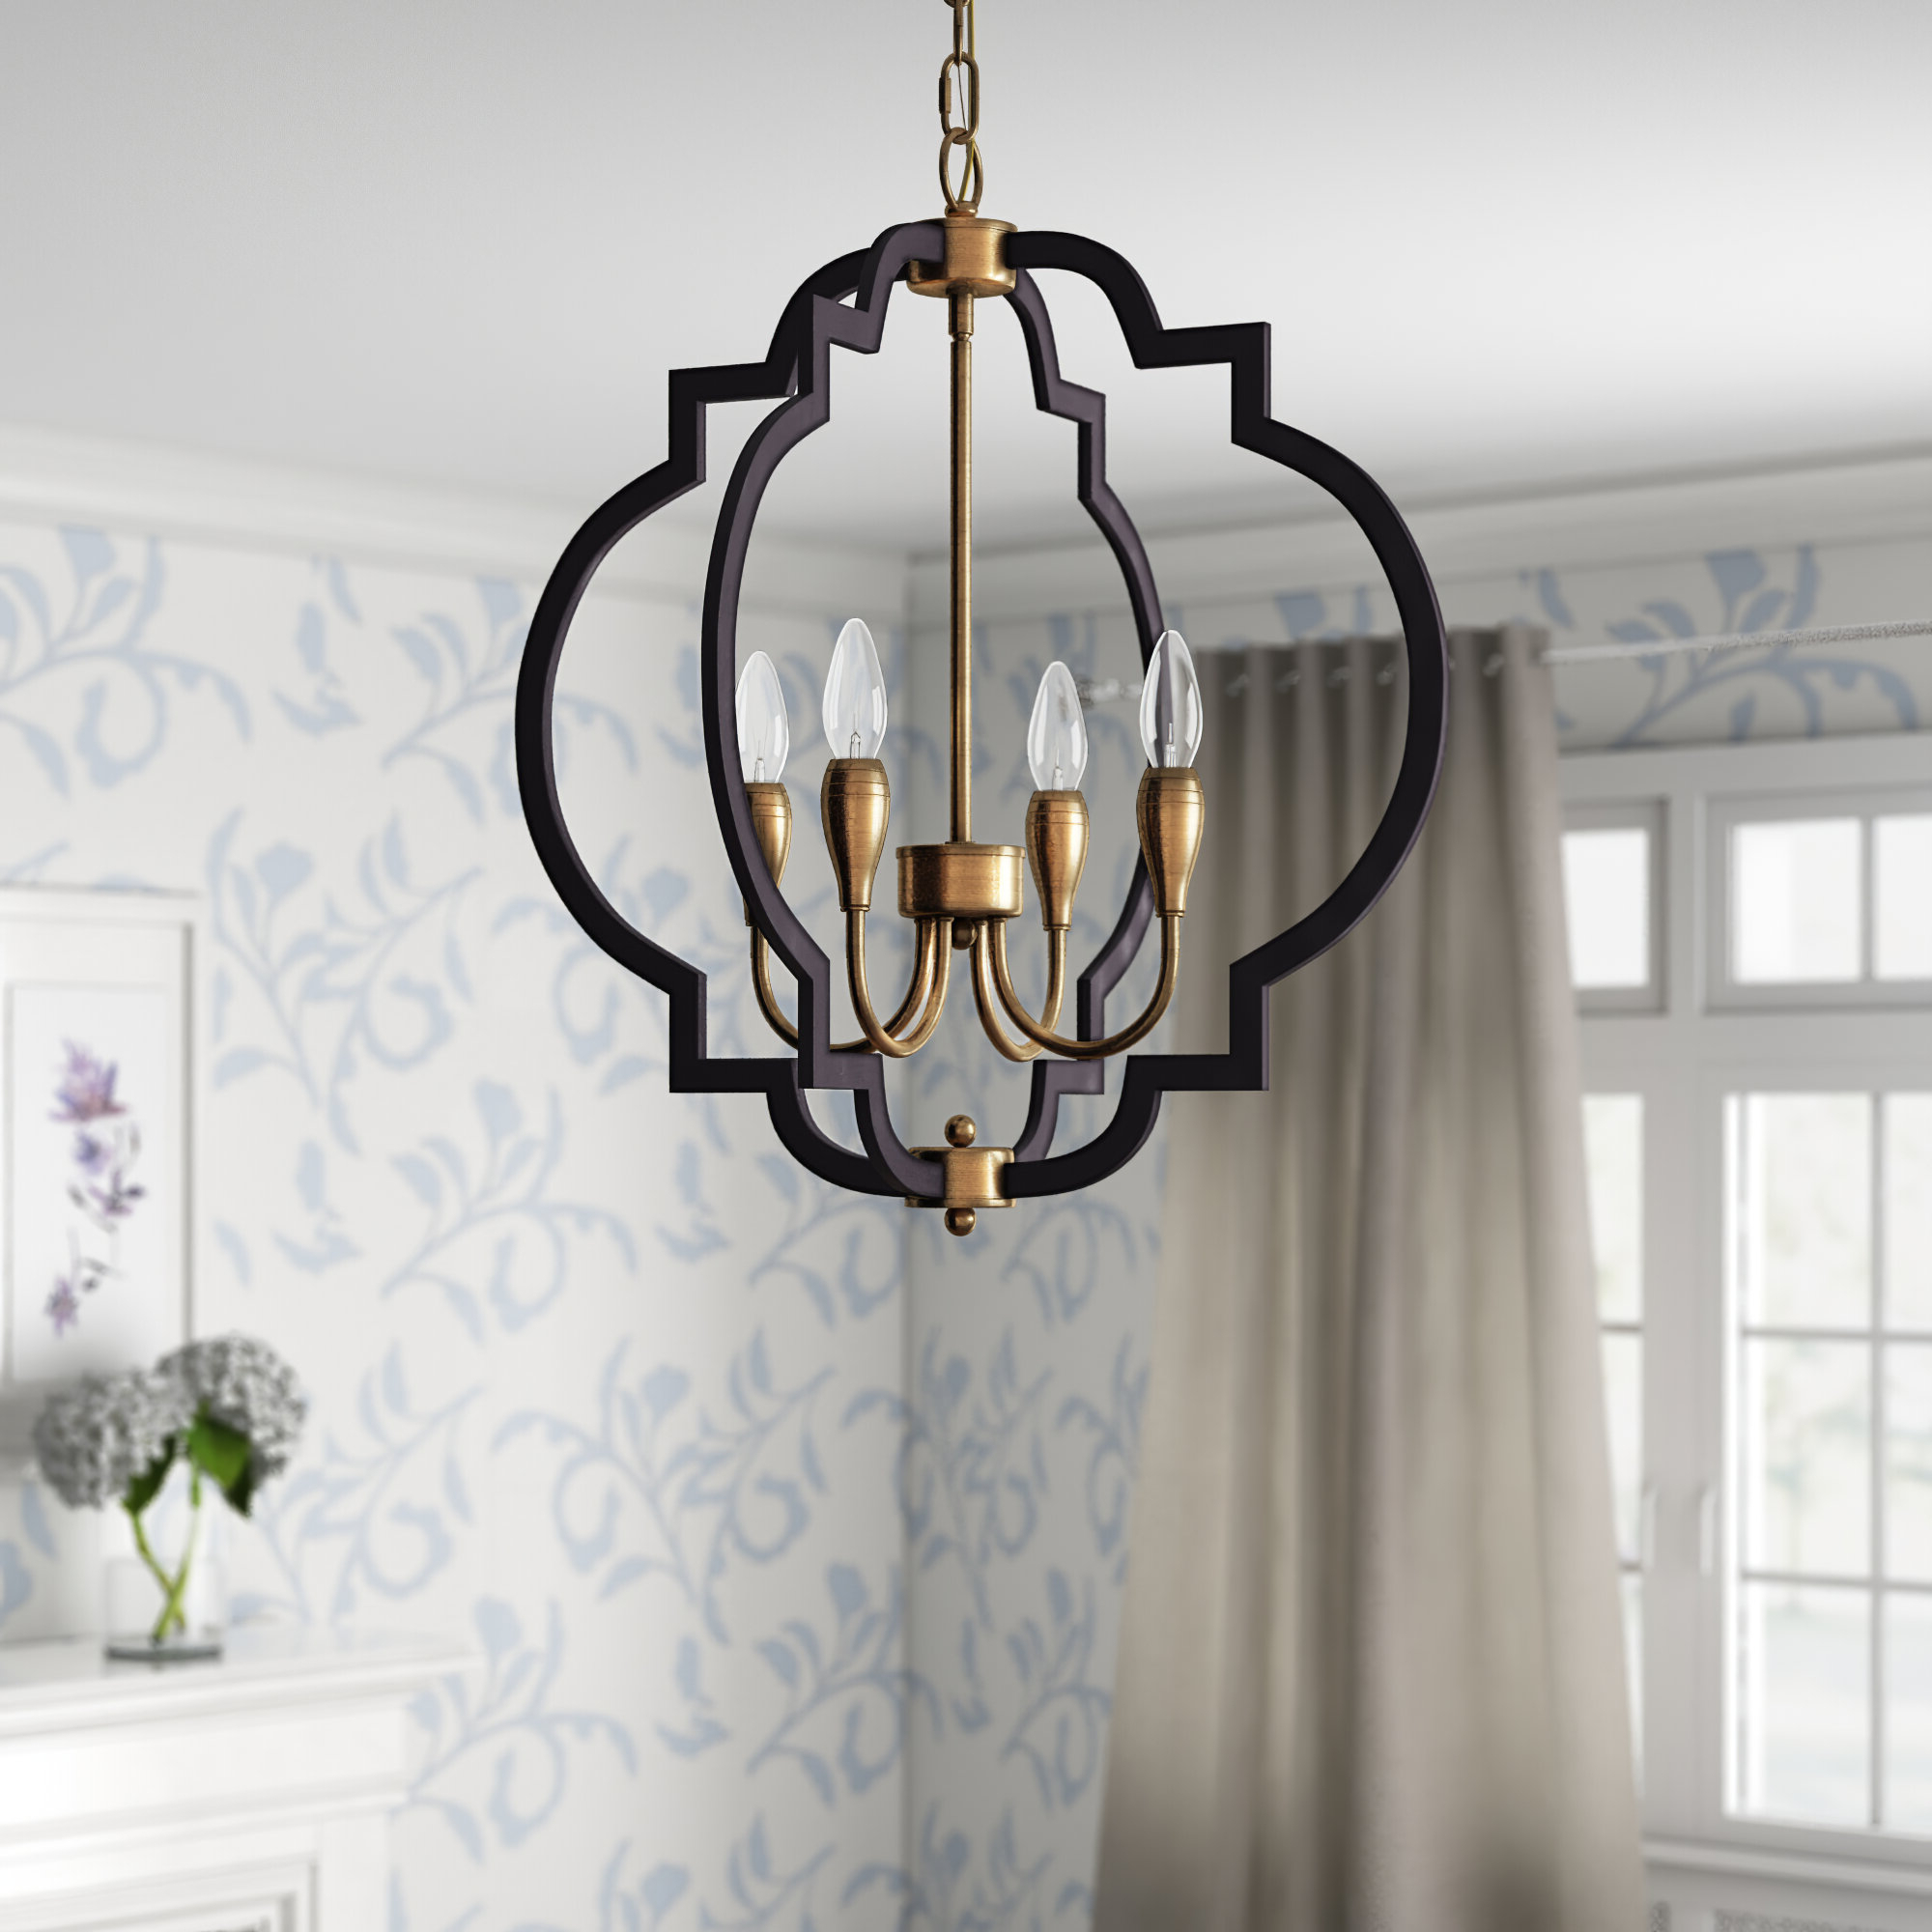 Bennington 4 Light Candle Style Chandeliers Within Favorite Astin 4 Light Geometric Chandelier (Gallery 18 of 20)